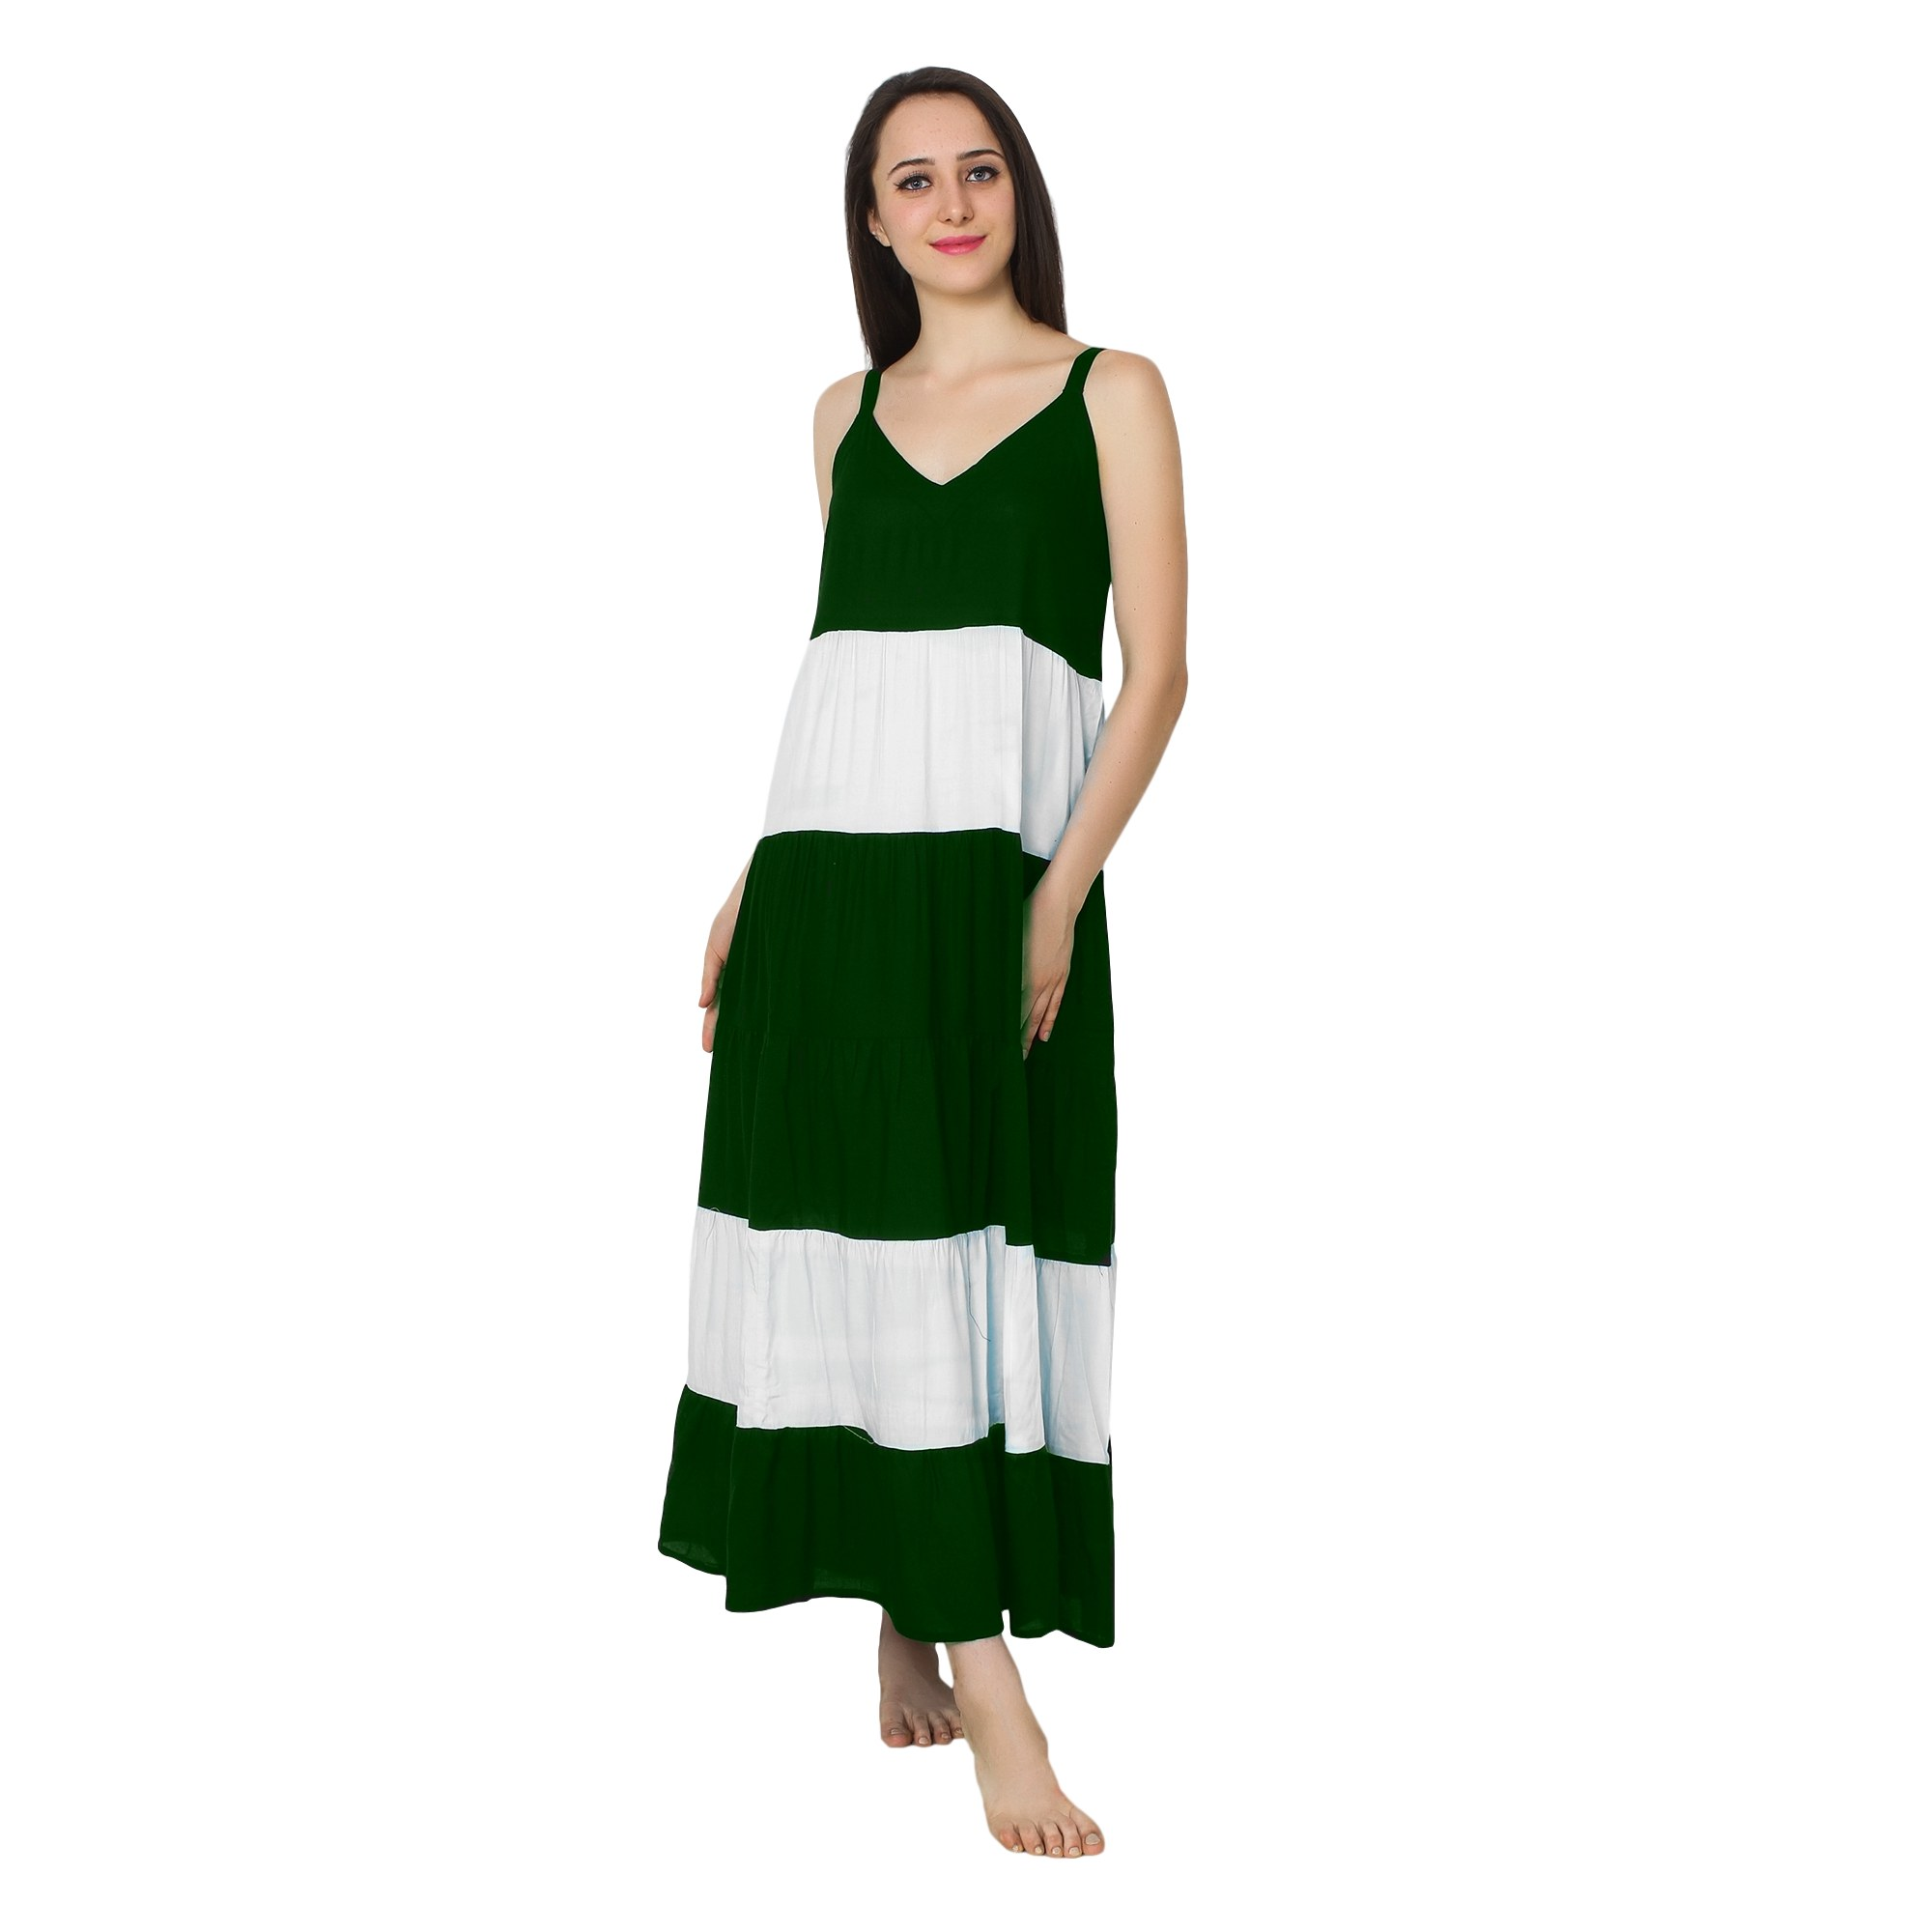 Spaghetti Strap Pleated Frilled Nighty Dress Gown in Bottle Green:White